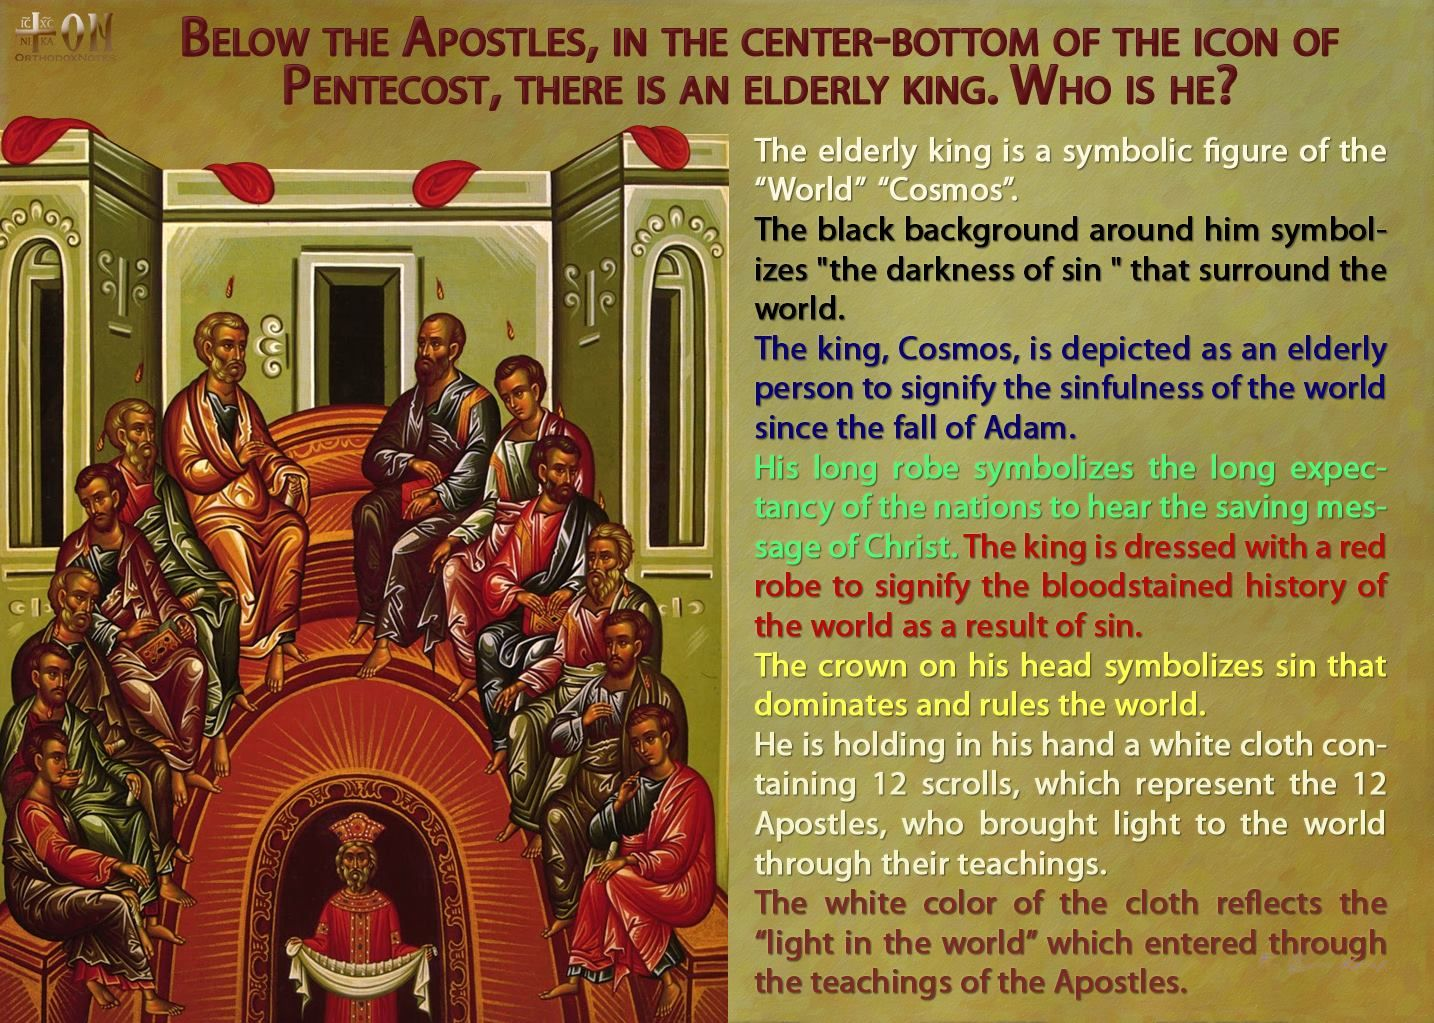 Description of a common Orthodox icon of the Apostles. Pentecost is considered the birth of the Christian church. The Apostles' Creed summarizes their teachings which we inherit.